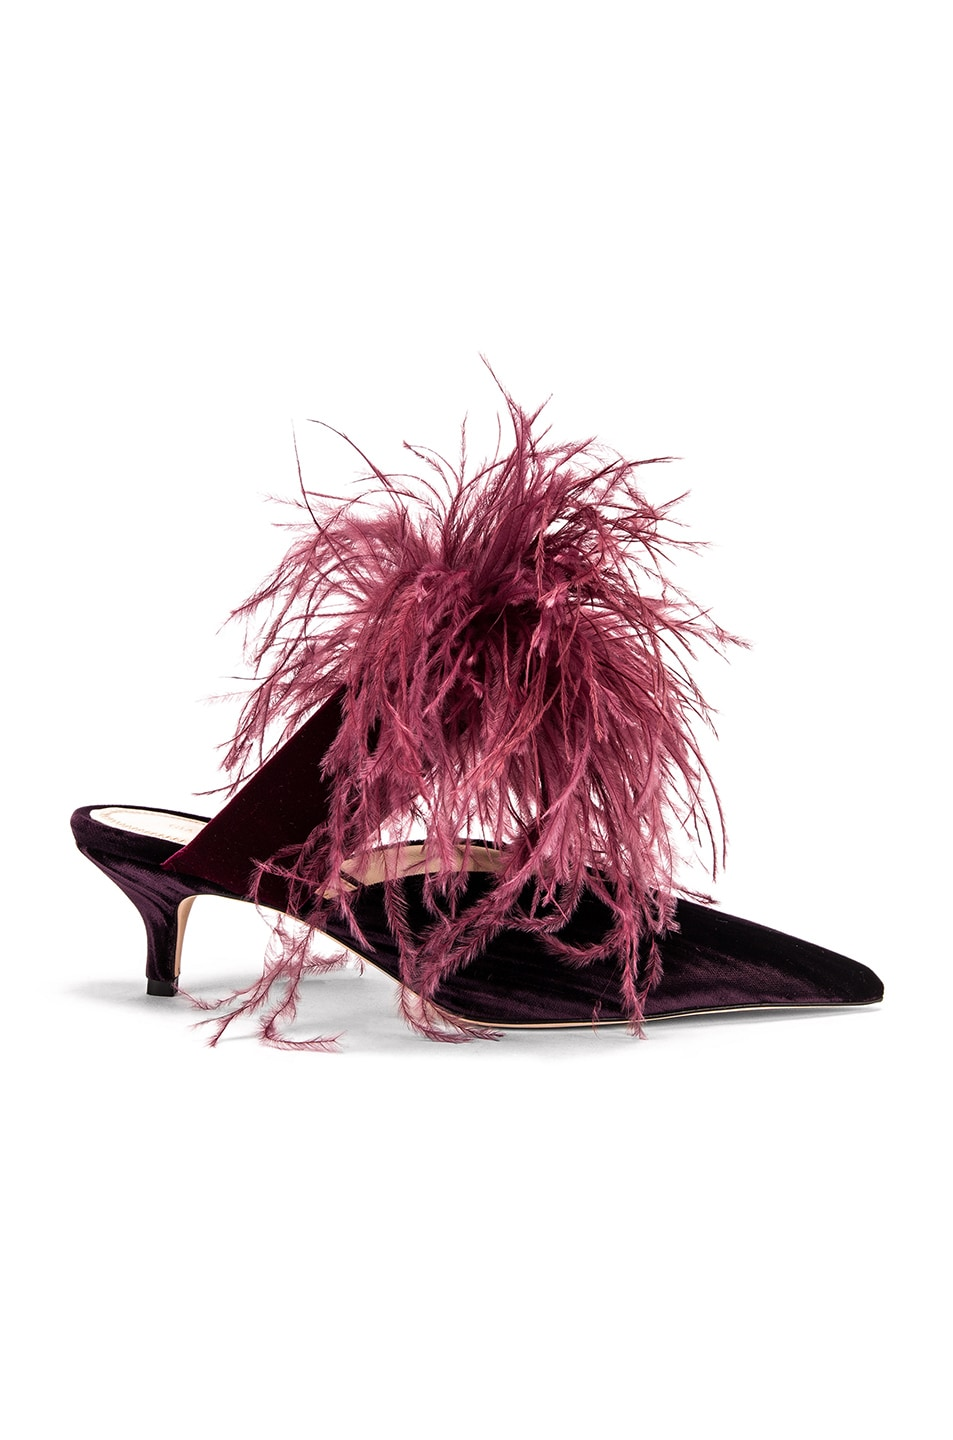 Image 1 of SILVIA TCHERASSI x Gia Couture Bandana Girl Feather Slide in Plum